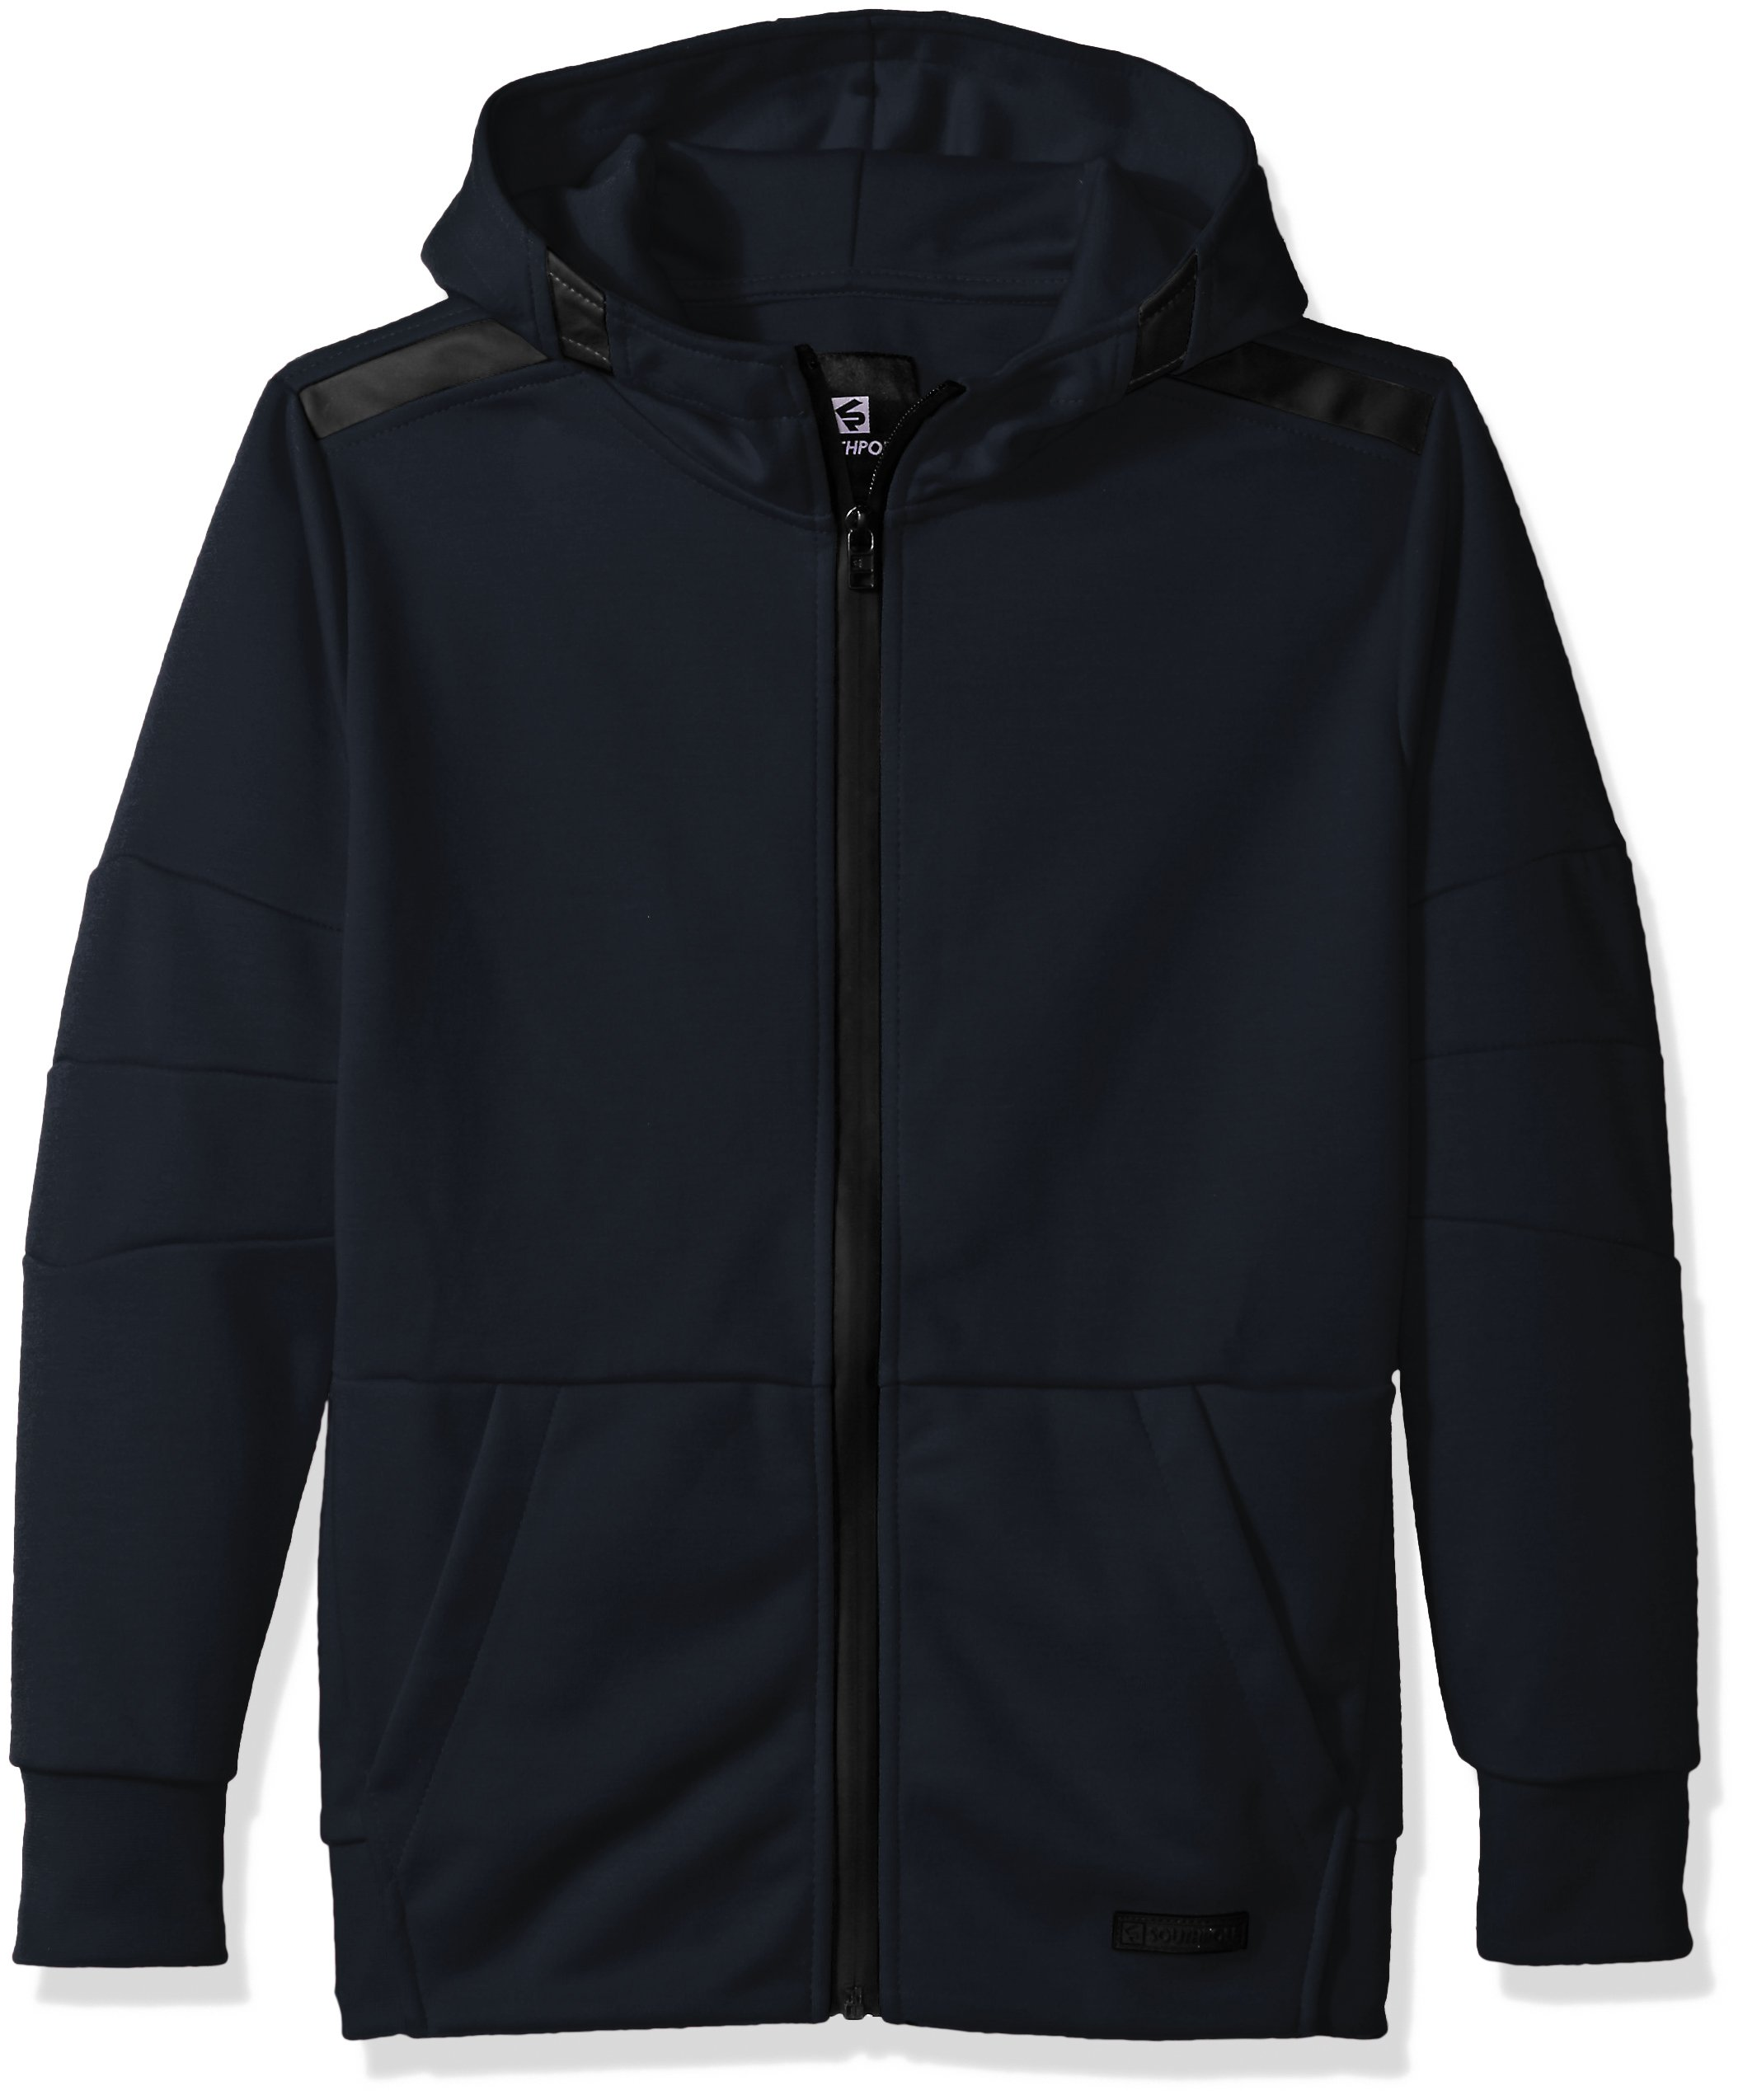 Southpole Boys' Big Tech Fleece Hooded Fullzip with Zipper Details, New Navy, Large